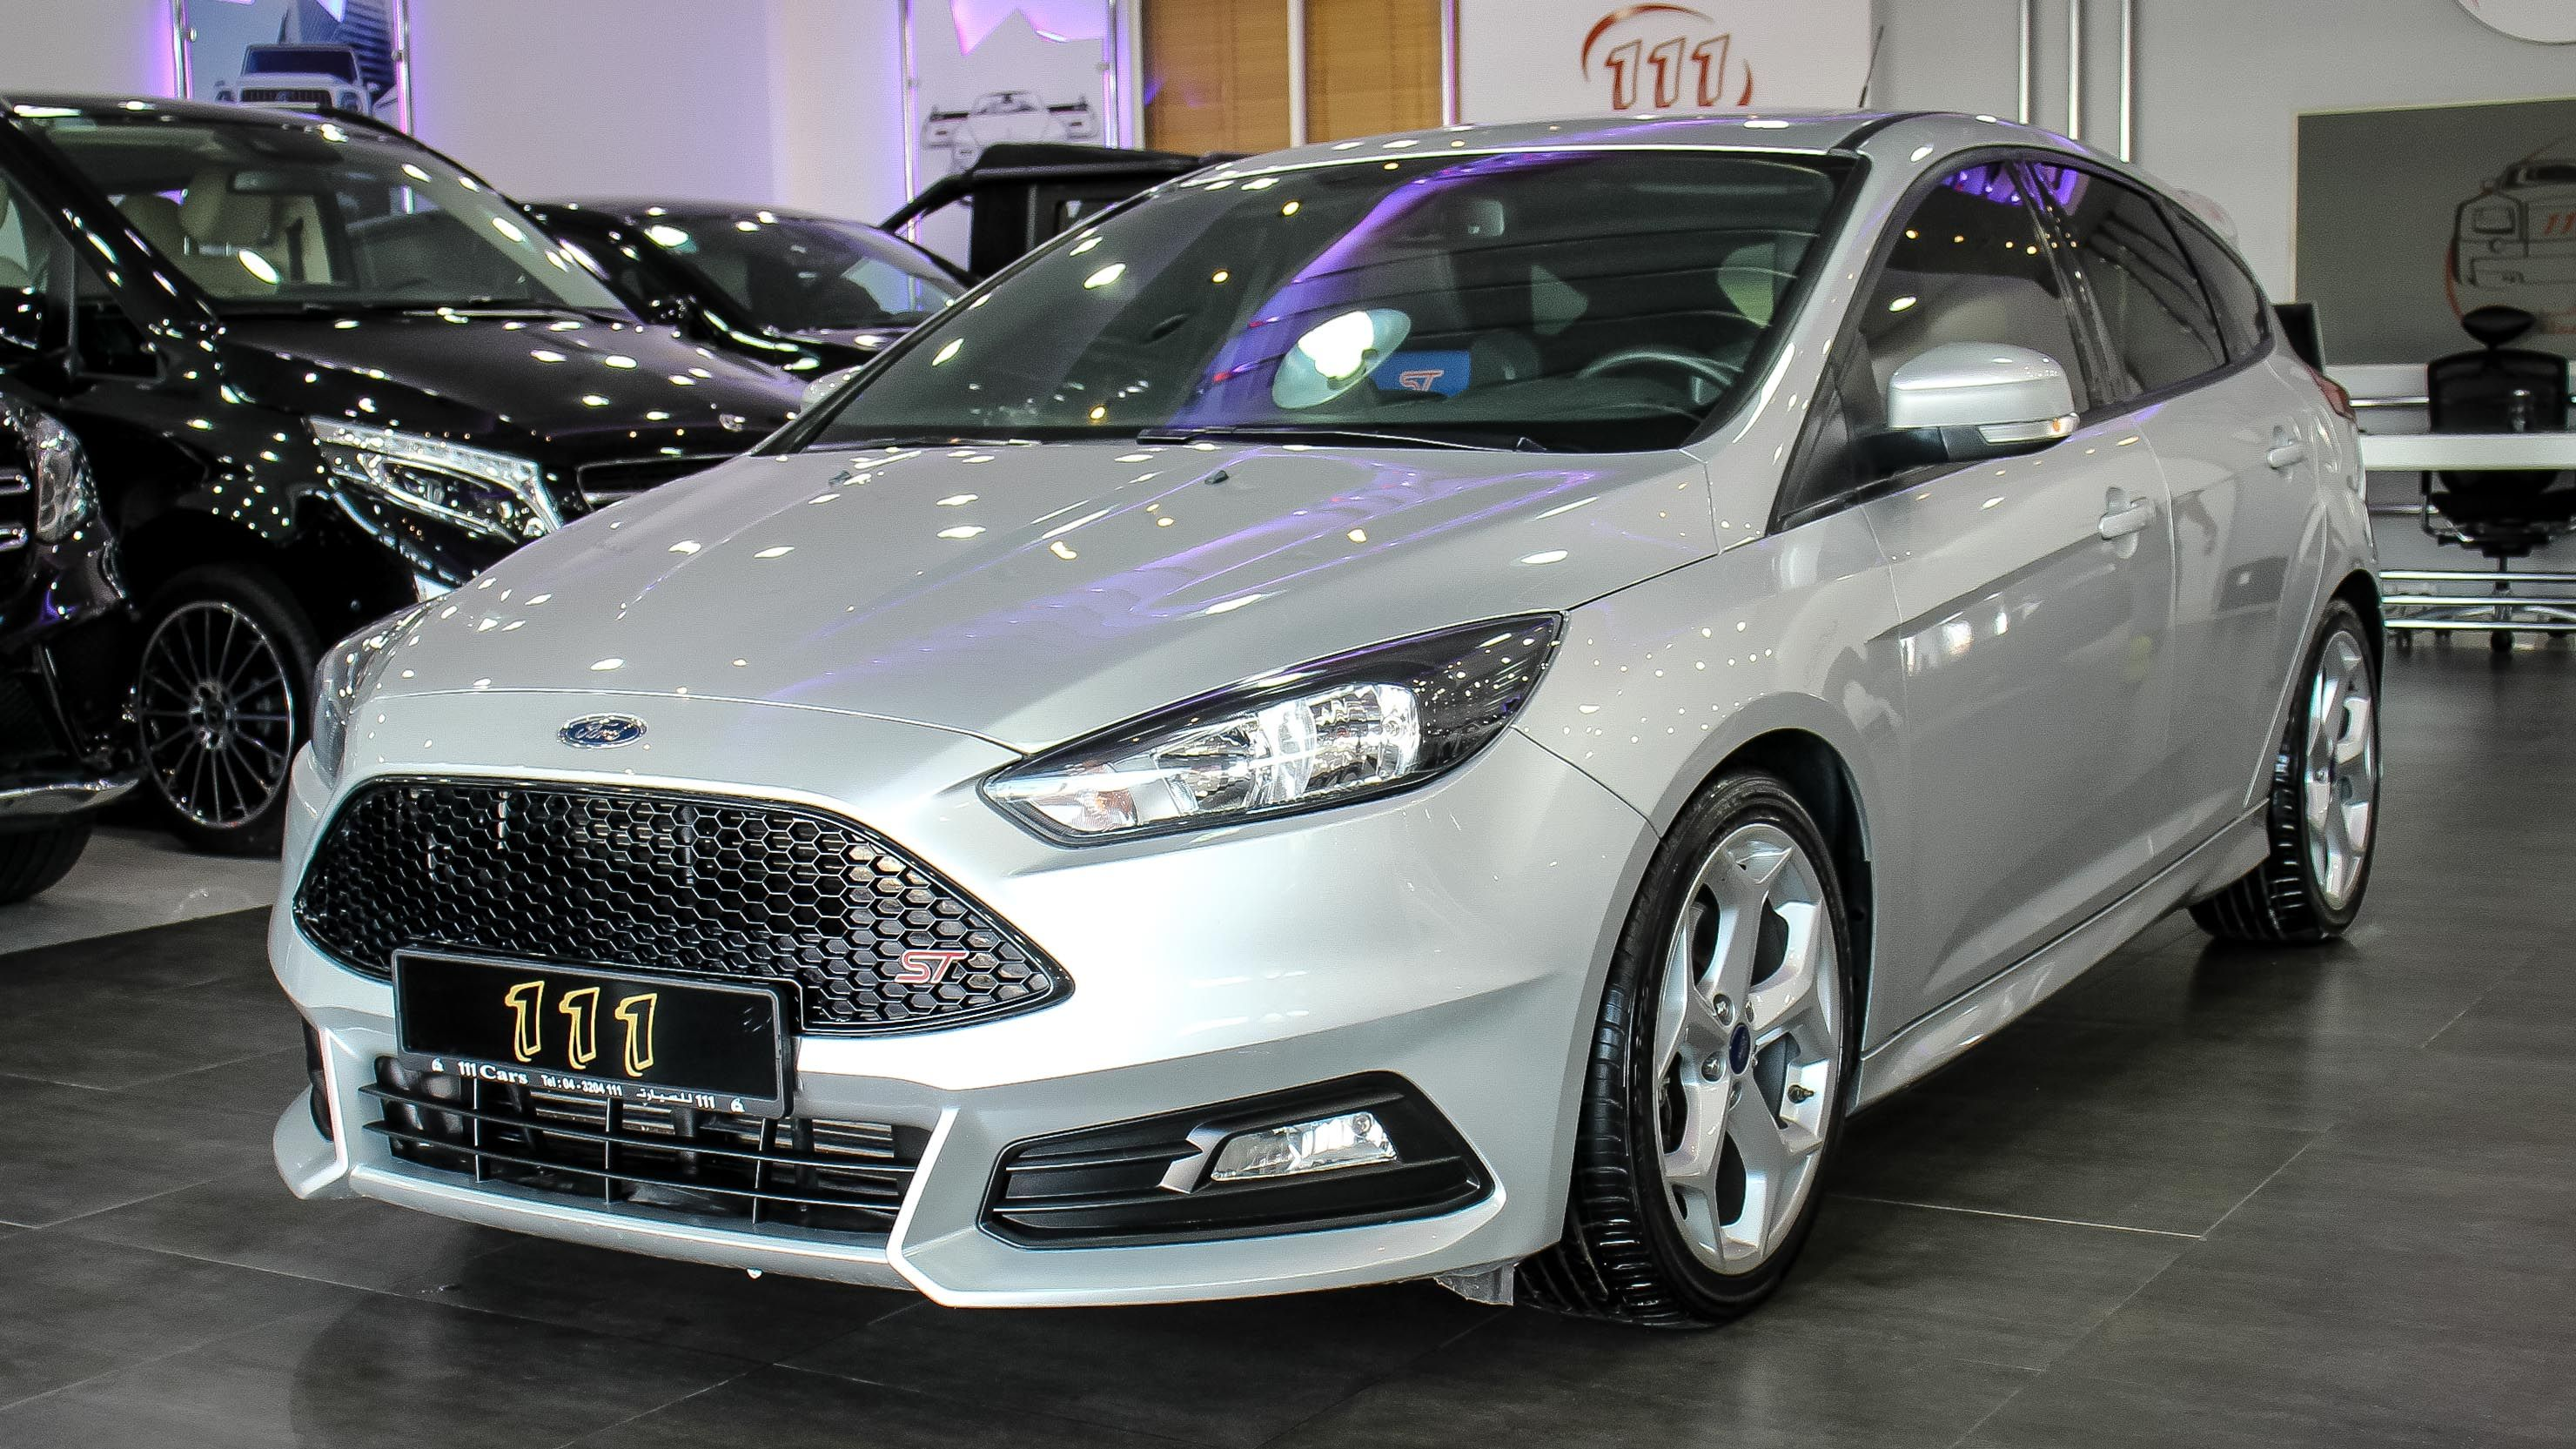 Model Ford Focus St Year 2015 Km 82 628 Price Call 971 4 320 4111 Ford Focus St Ford Focus Bmw Car